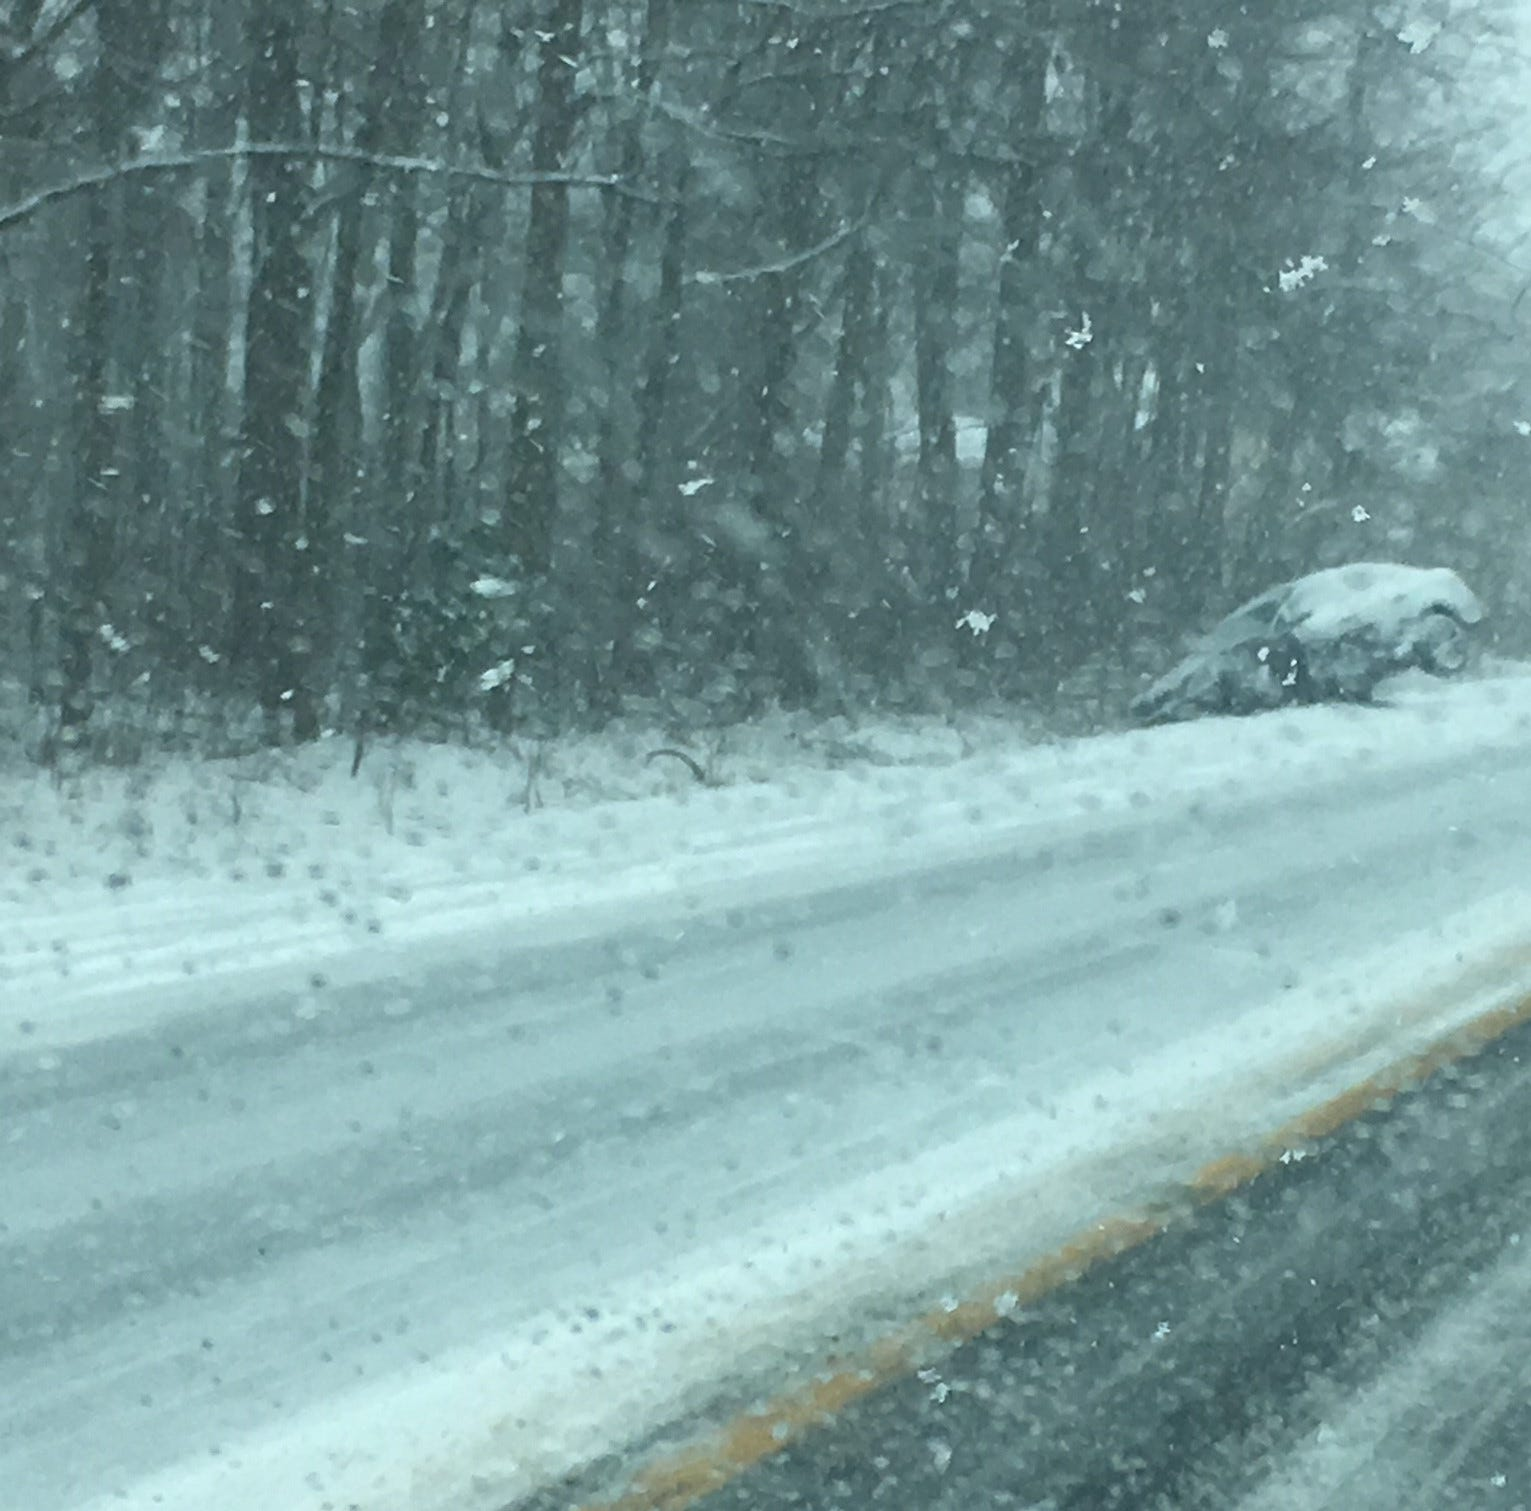 Speed limit on I-495 reduced to 45 mph as several crashes are reported